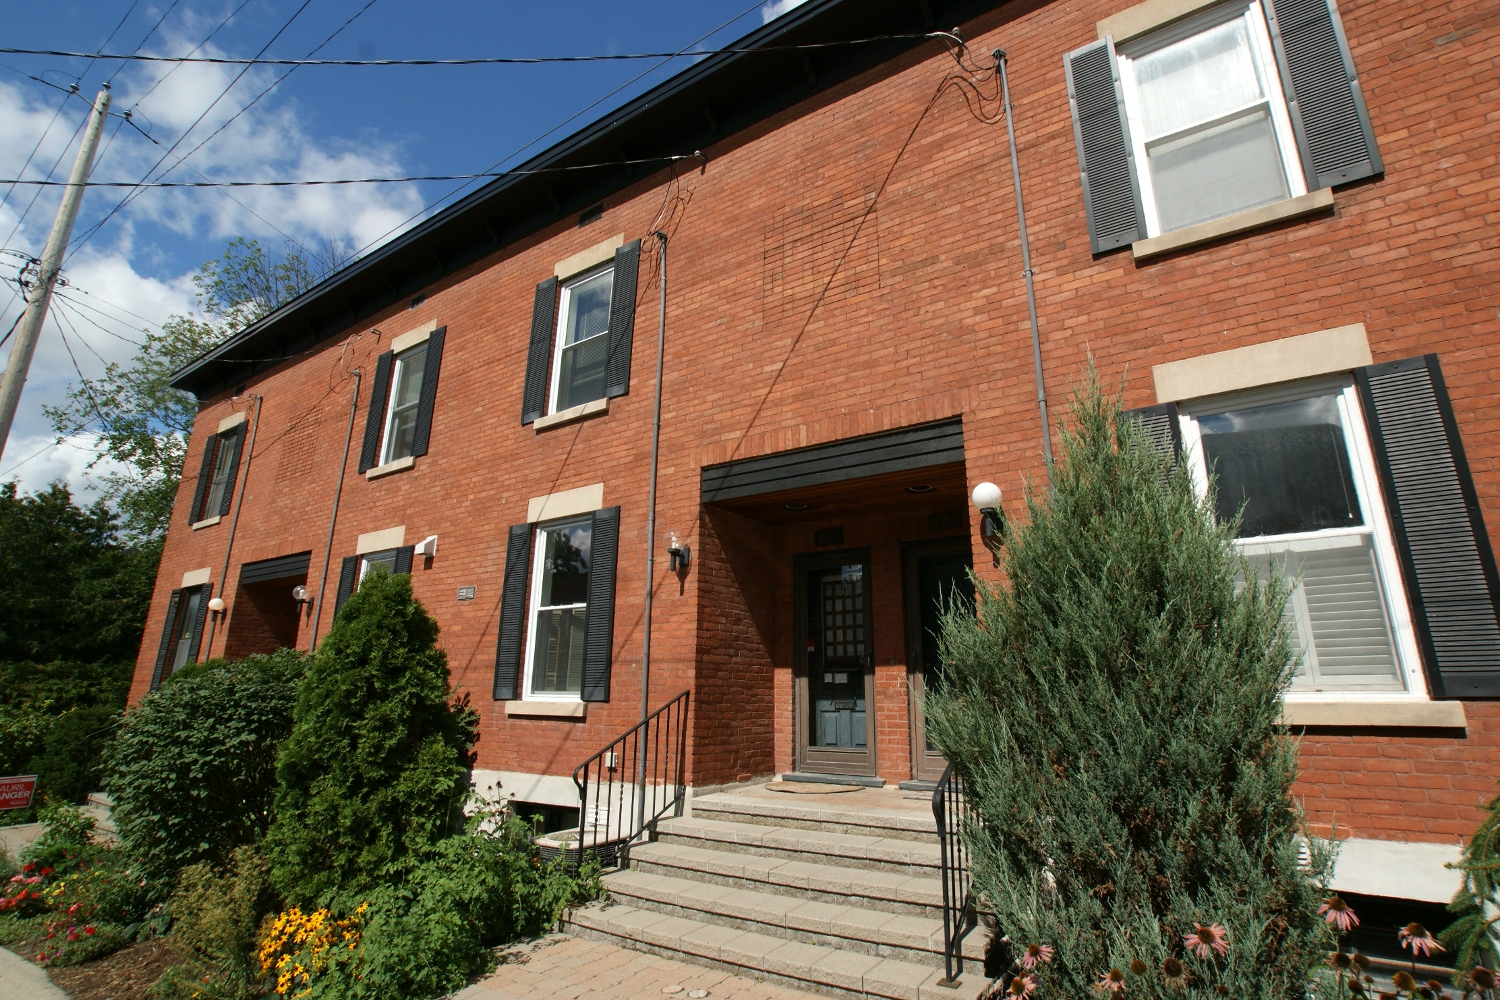 369 Templeton St – Rented October 2015